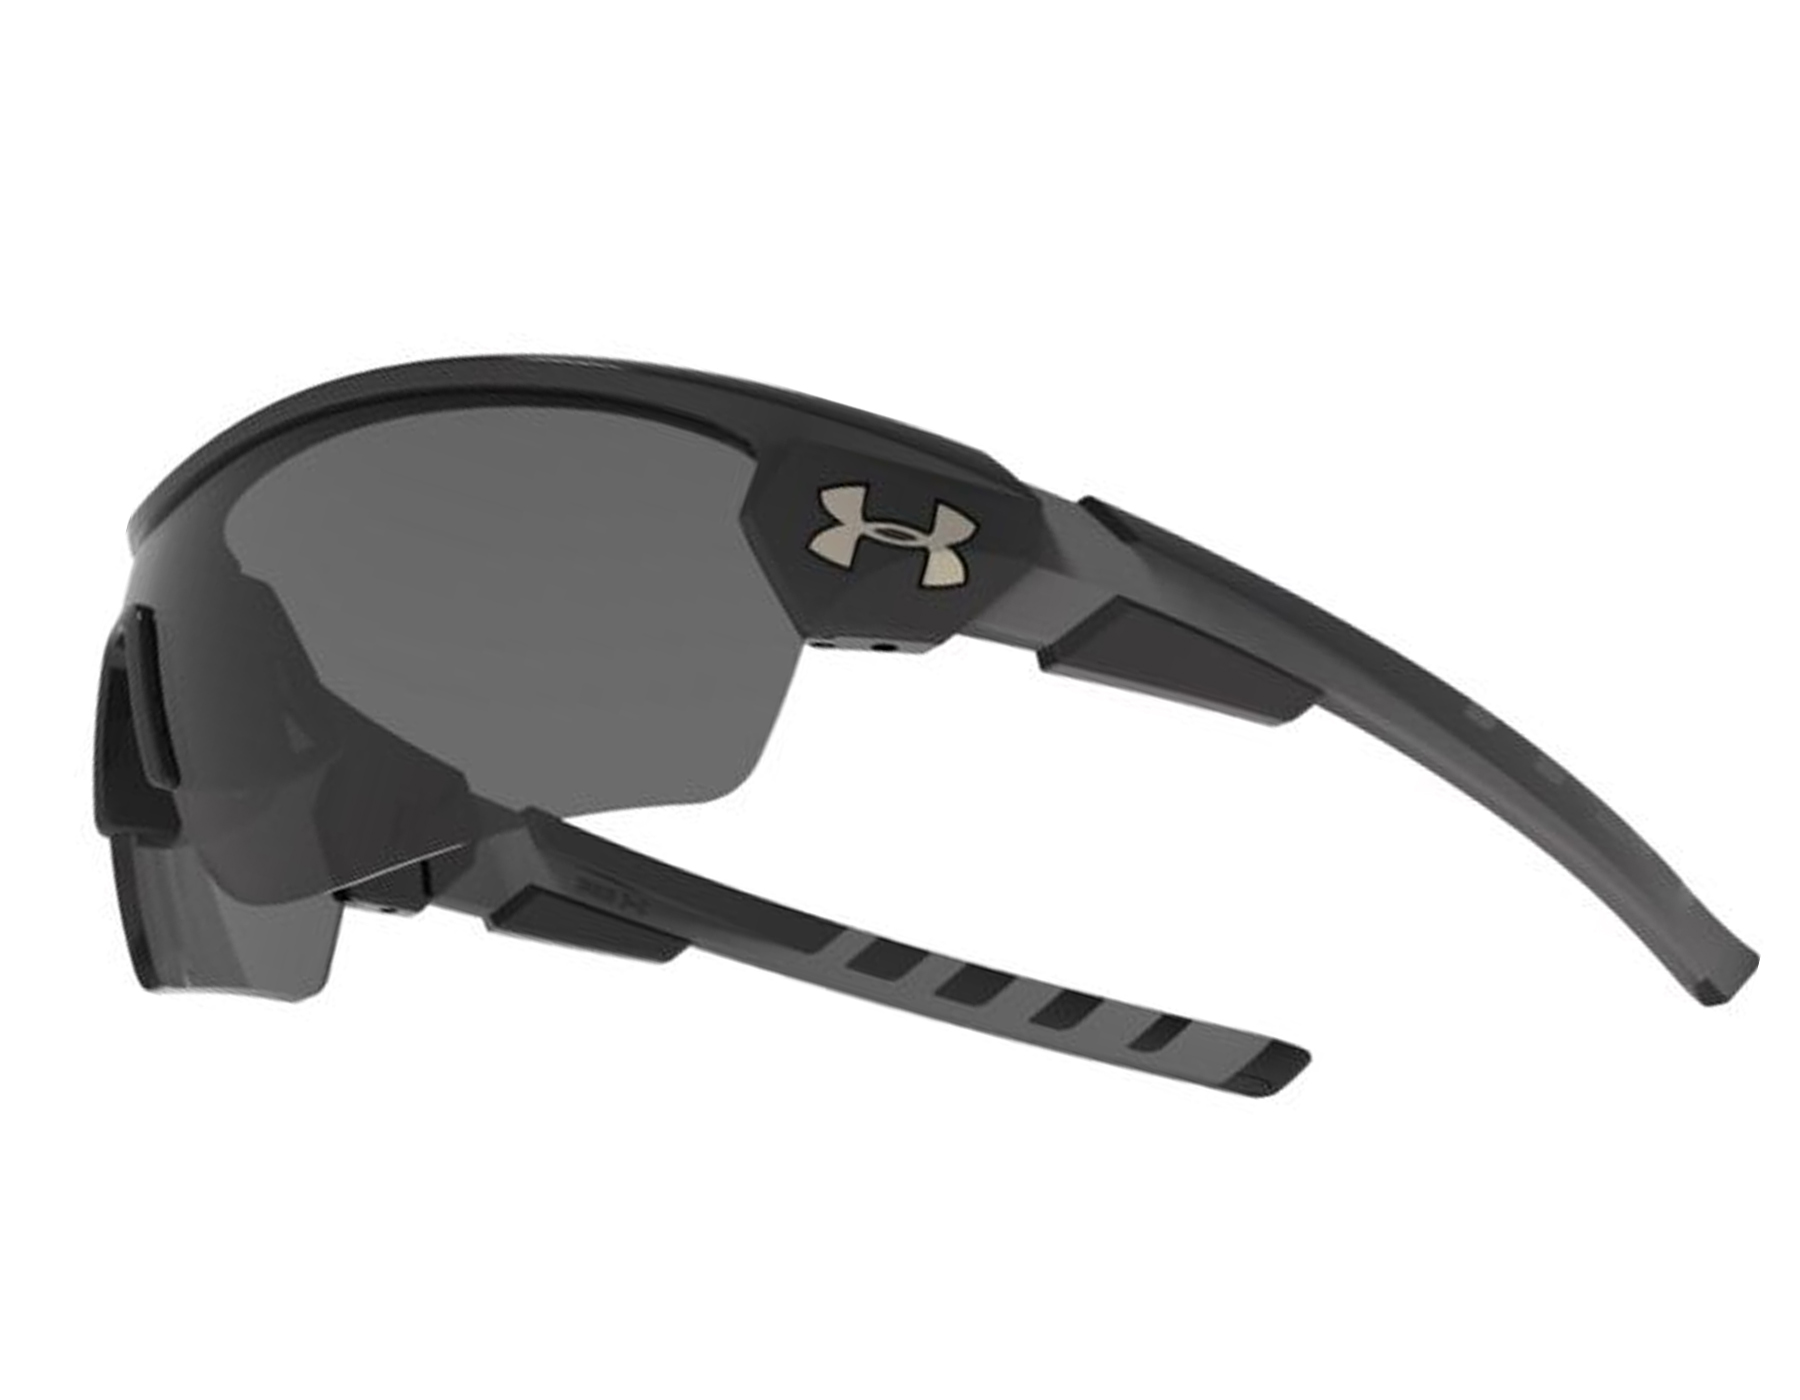 3eeb39565a5c Details about NEW Under Armour Rival Satin Black / Gray 8613090 010100  Sunglasses